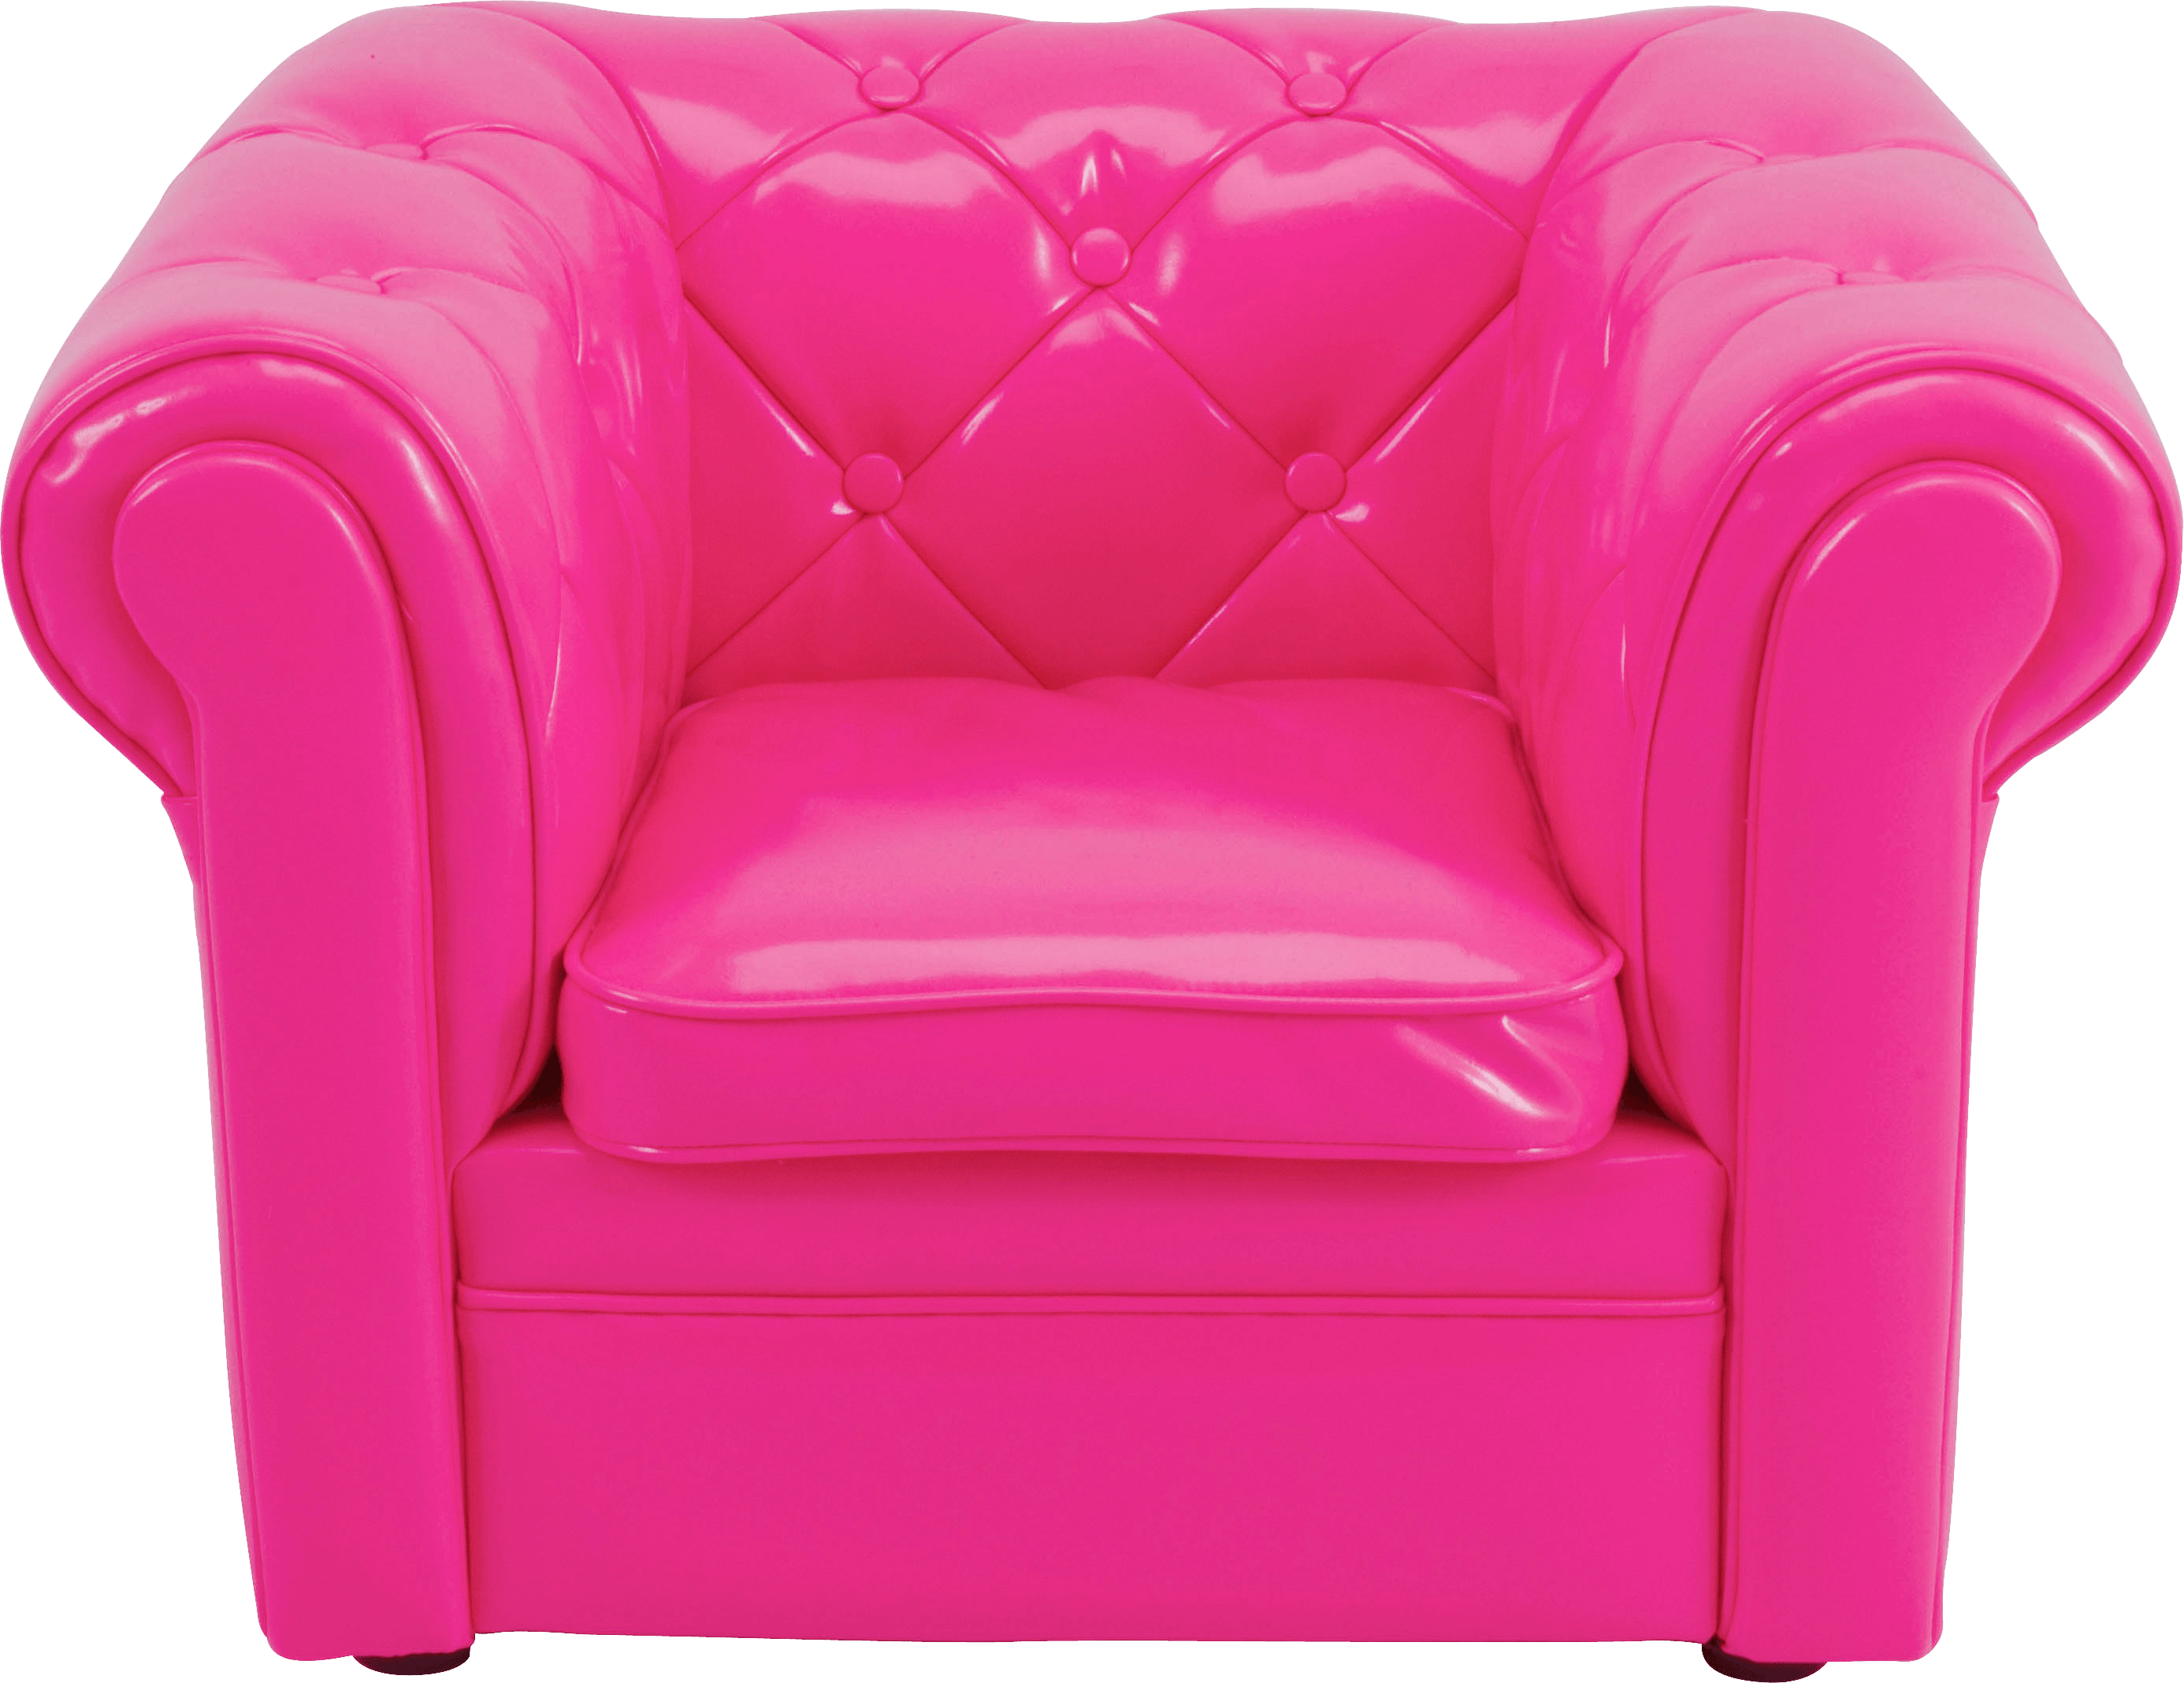 Armchair pink transparent png. Furniture clipart purple chair